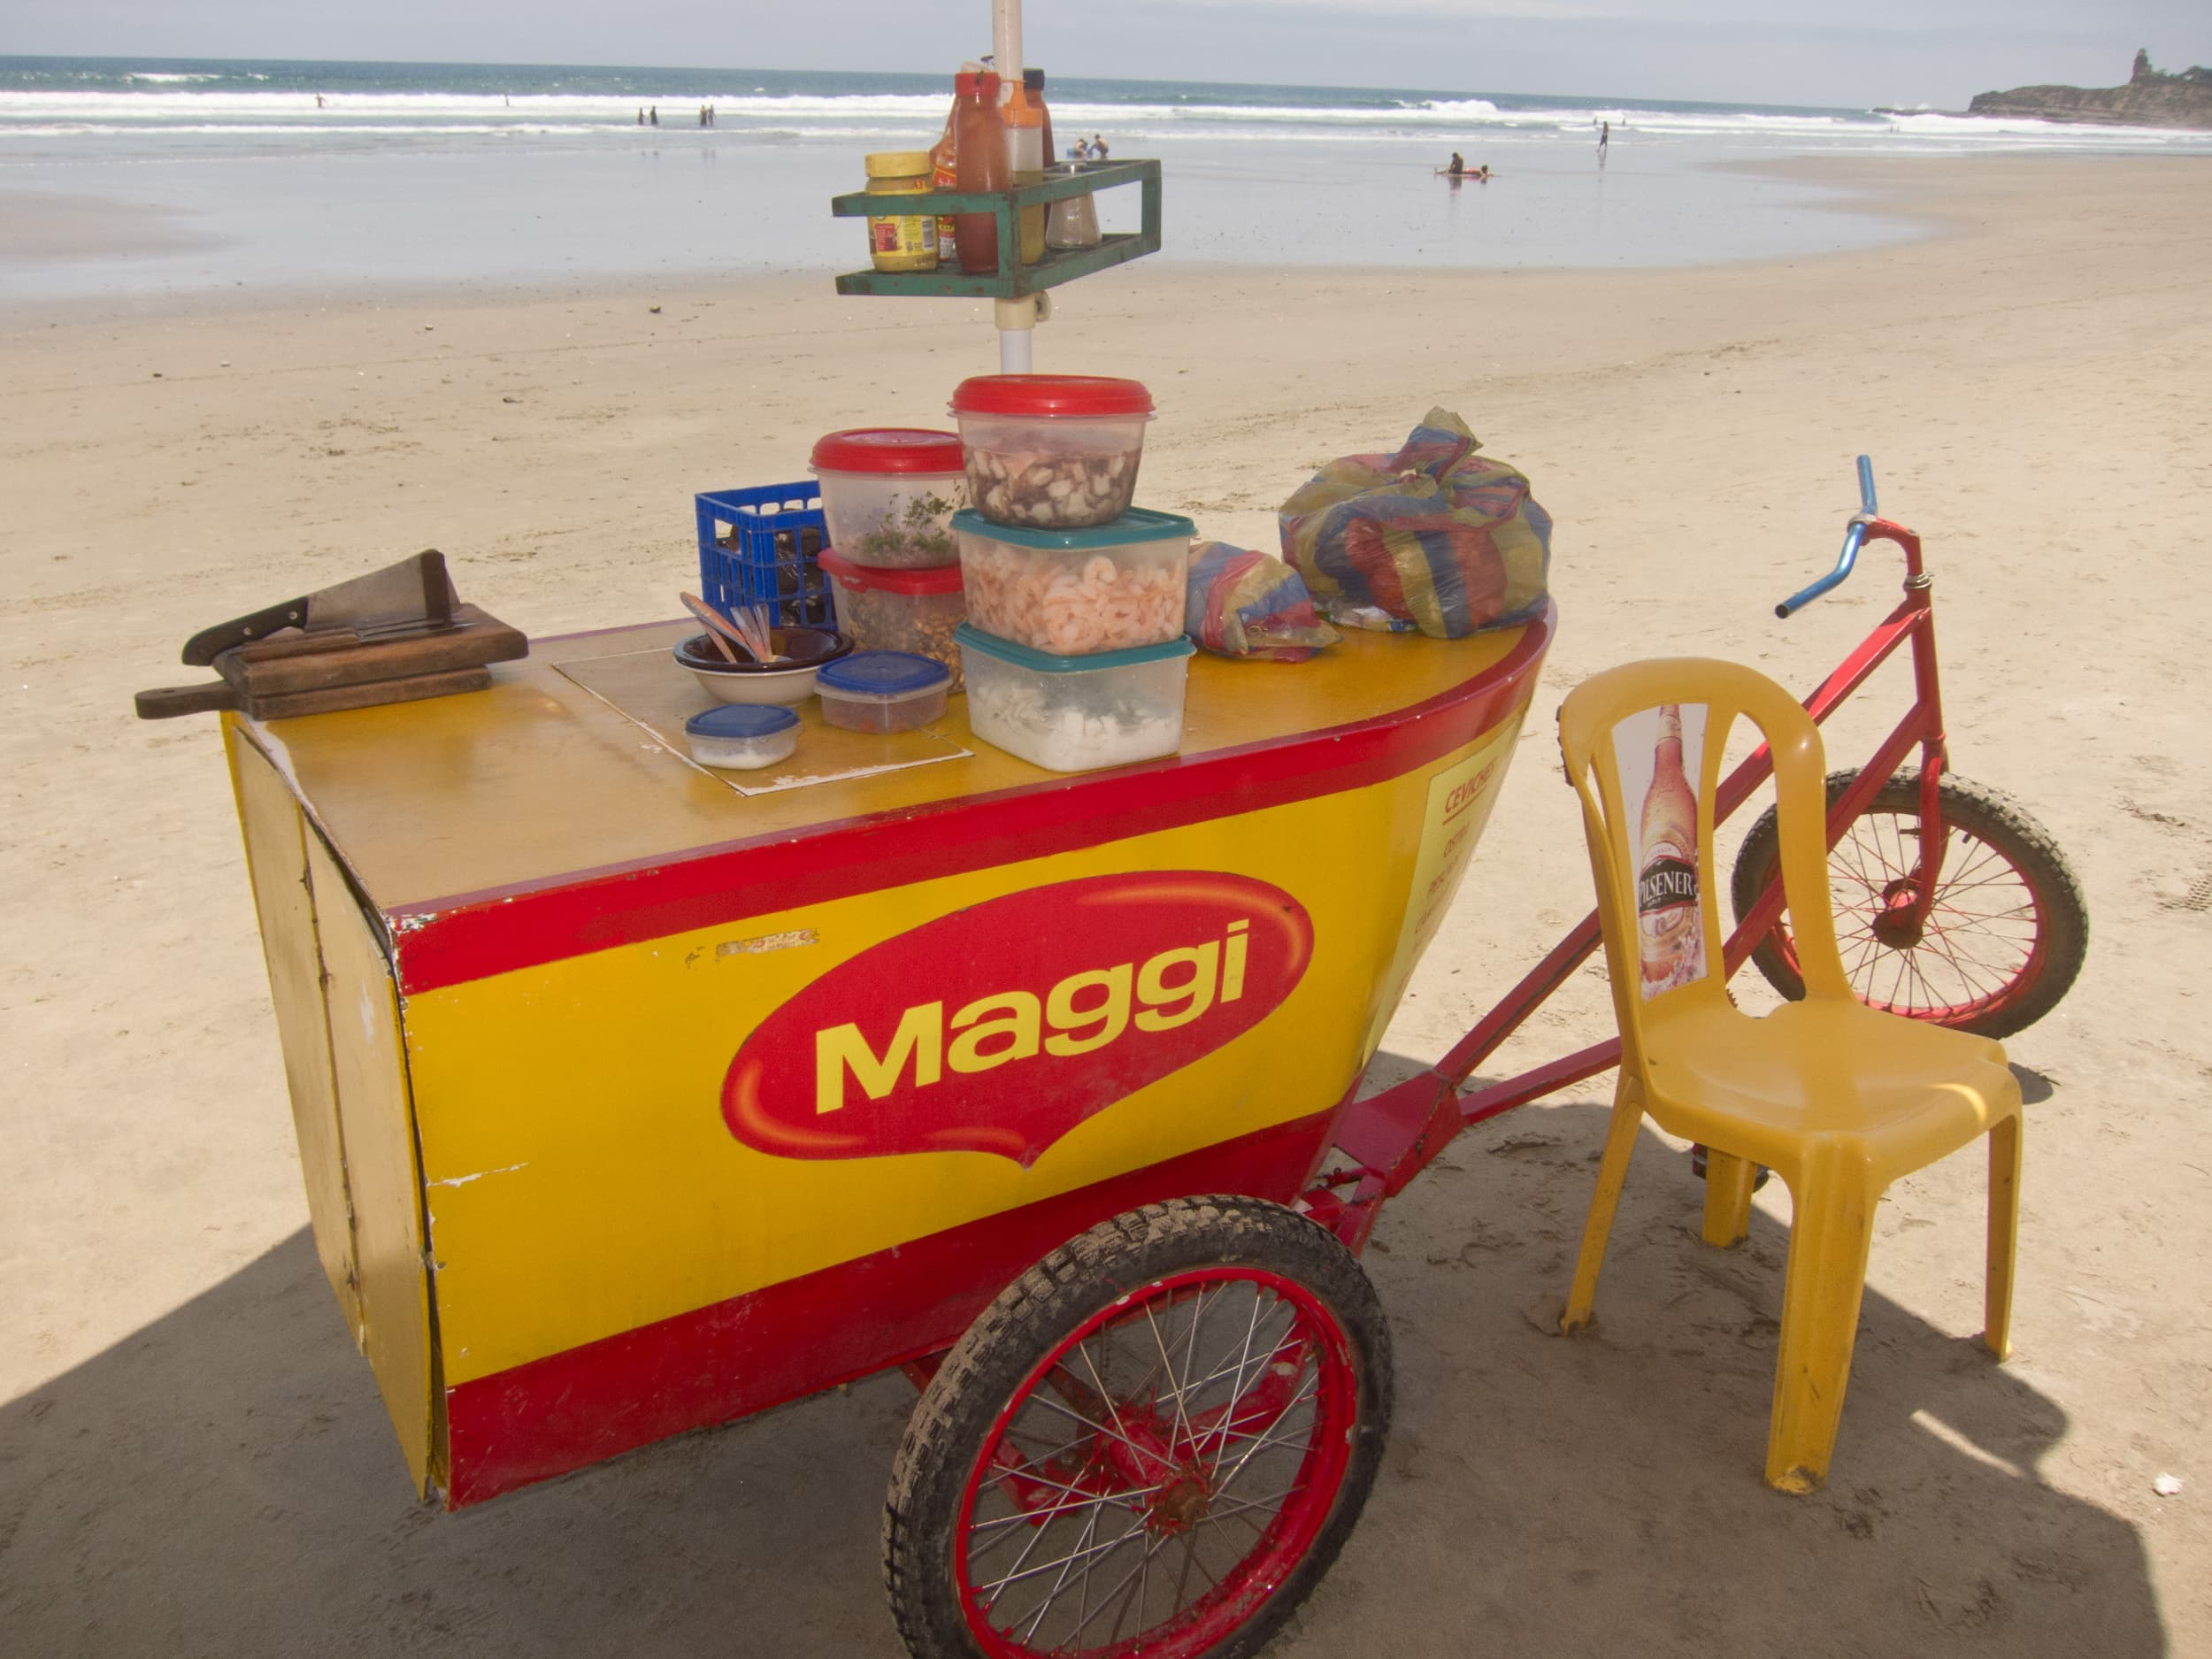 Ceviche vendors can be found throughout the town, and on the beach